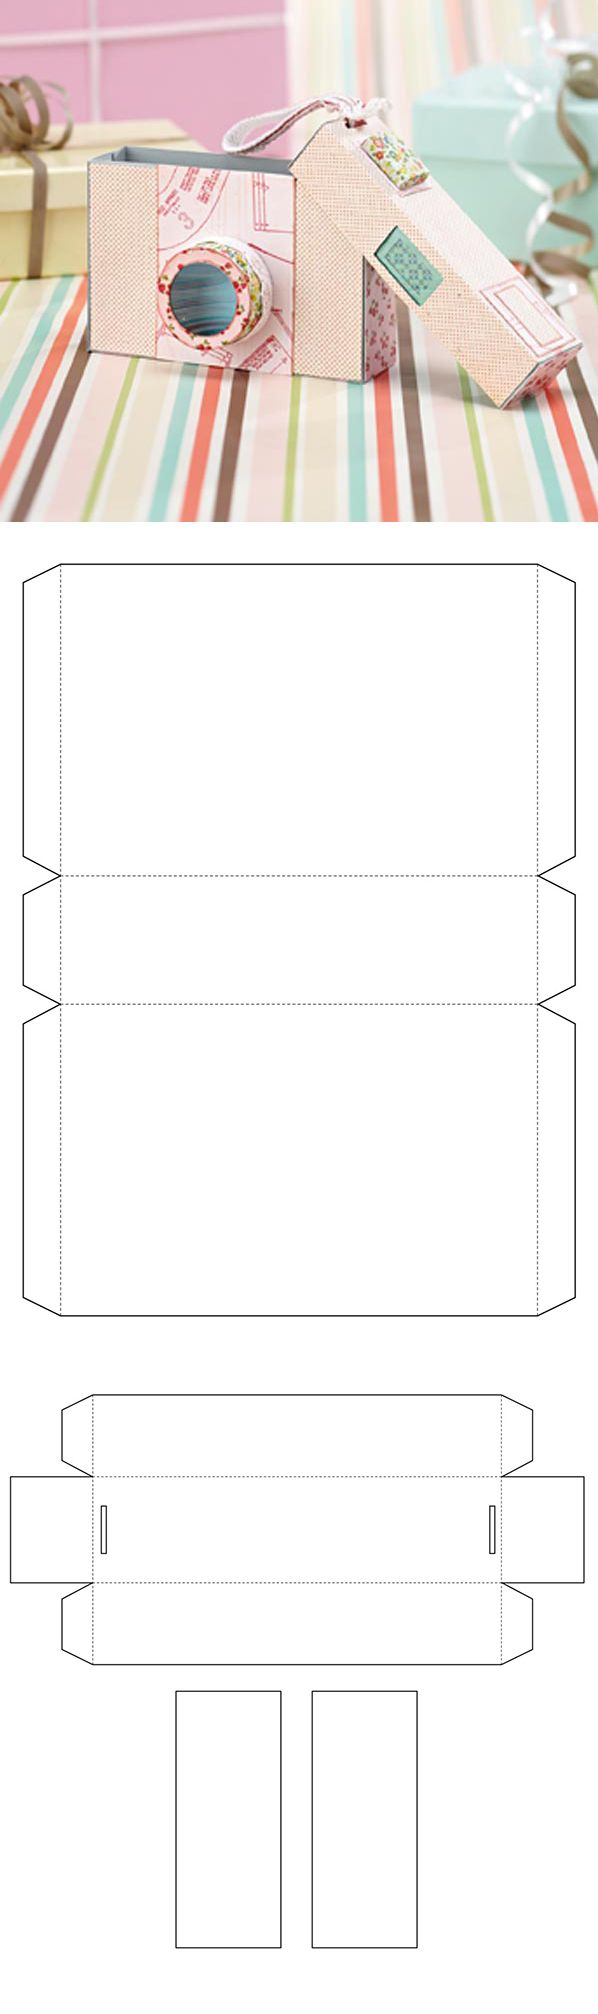 Free camera gift box template - from Papercraft Inspirations magazine (This would make the perfect Silhouette cut file).  http://www.papercraftinspirationsmagazine.co.uk/category/blog/free-camera-gift-box-template.htm